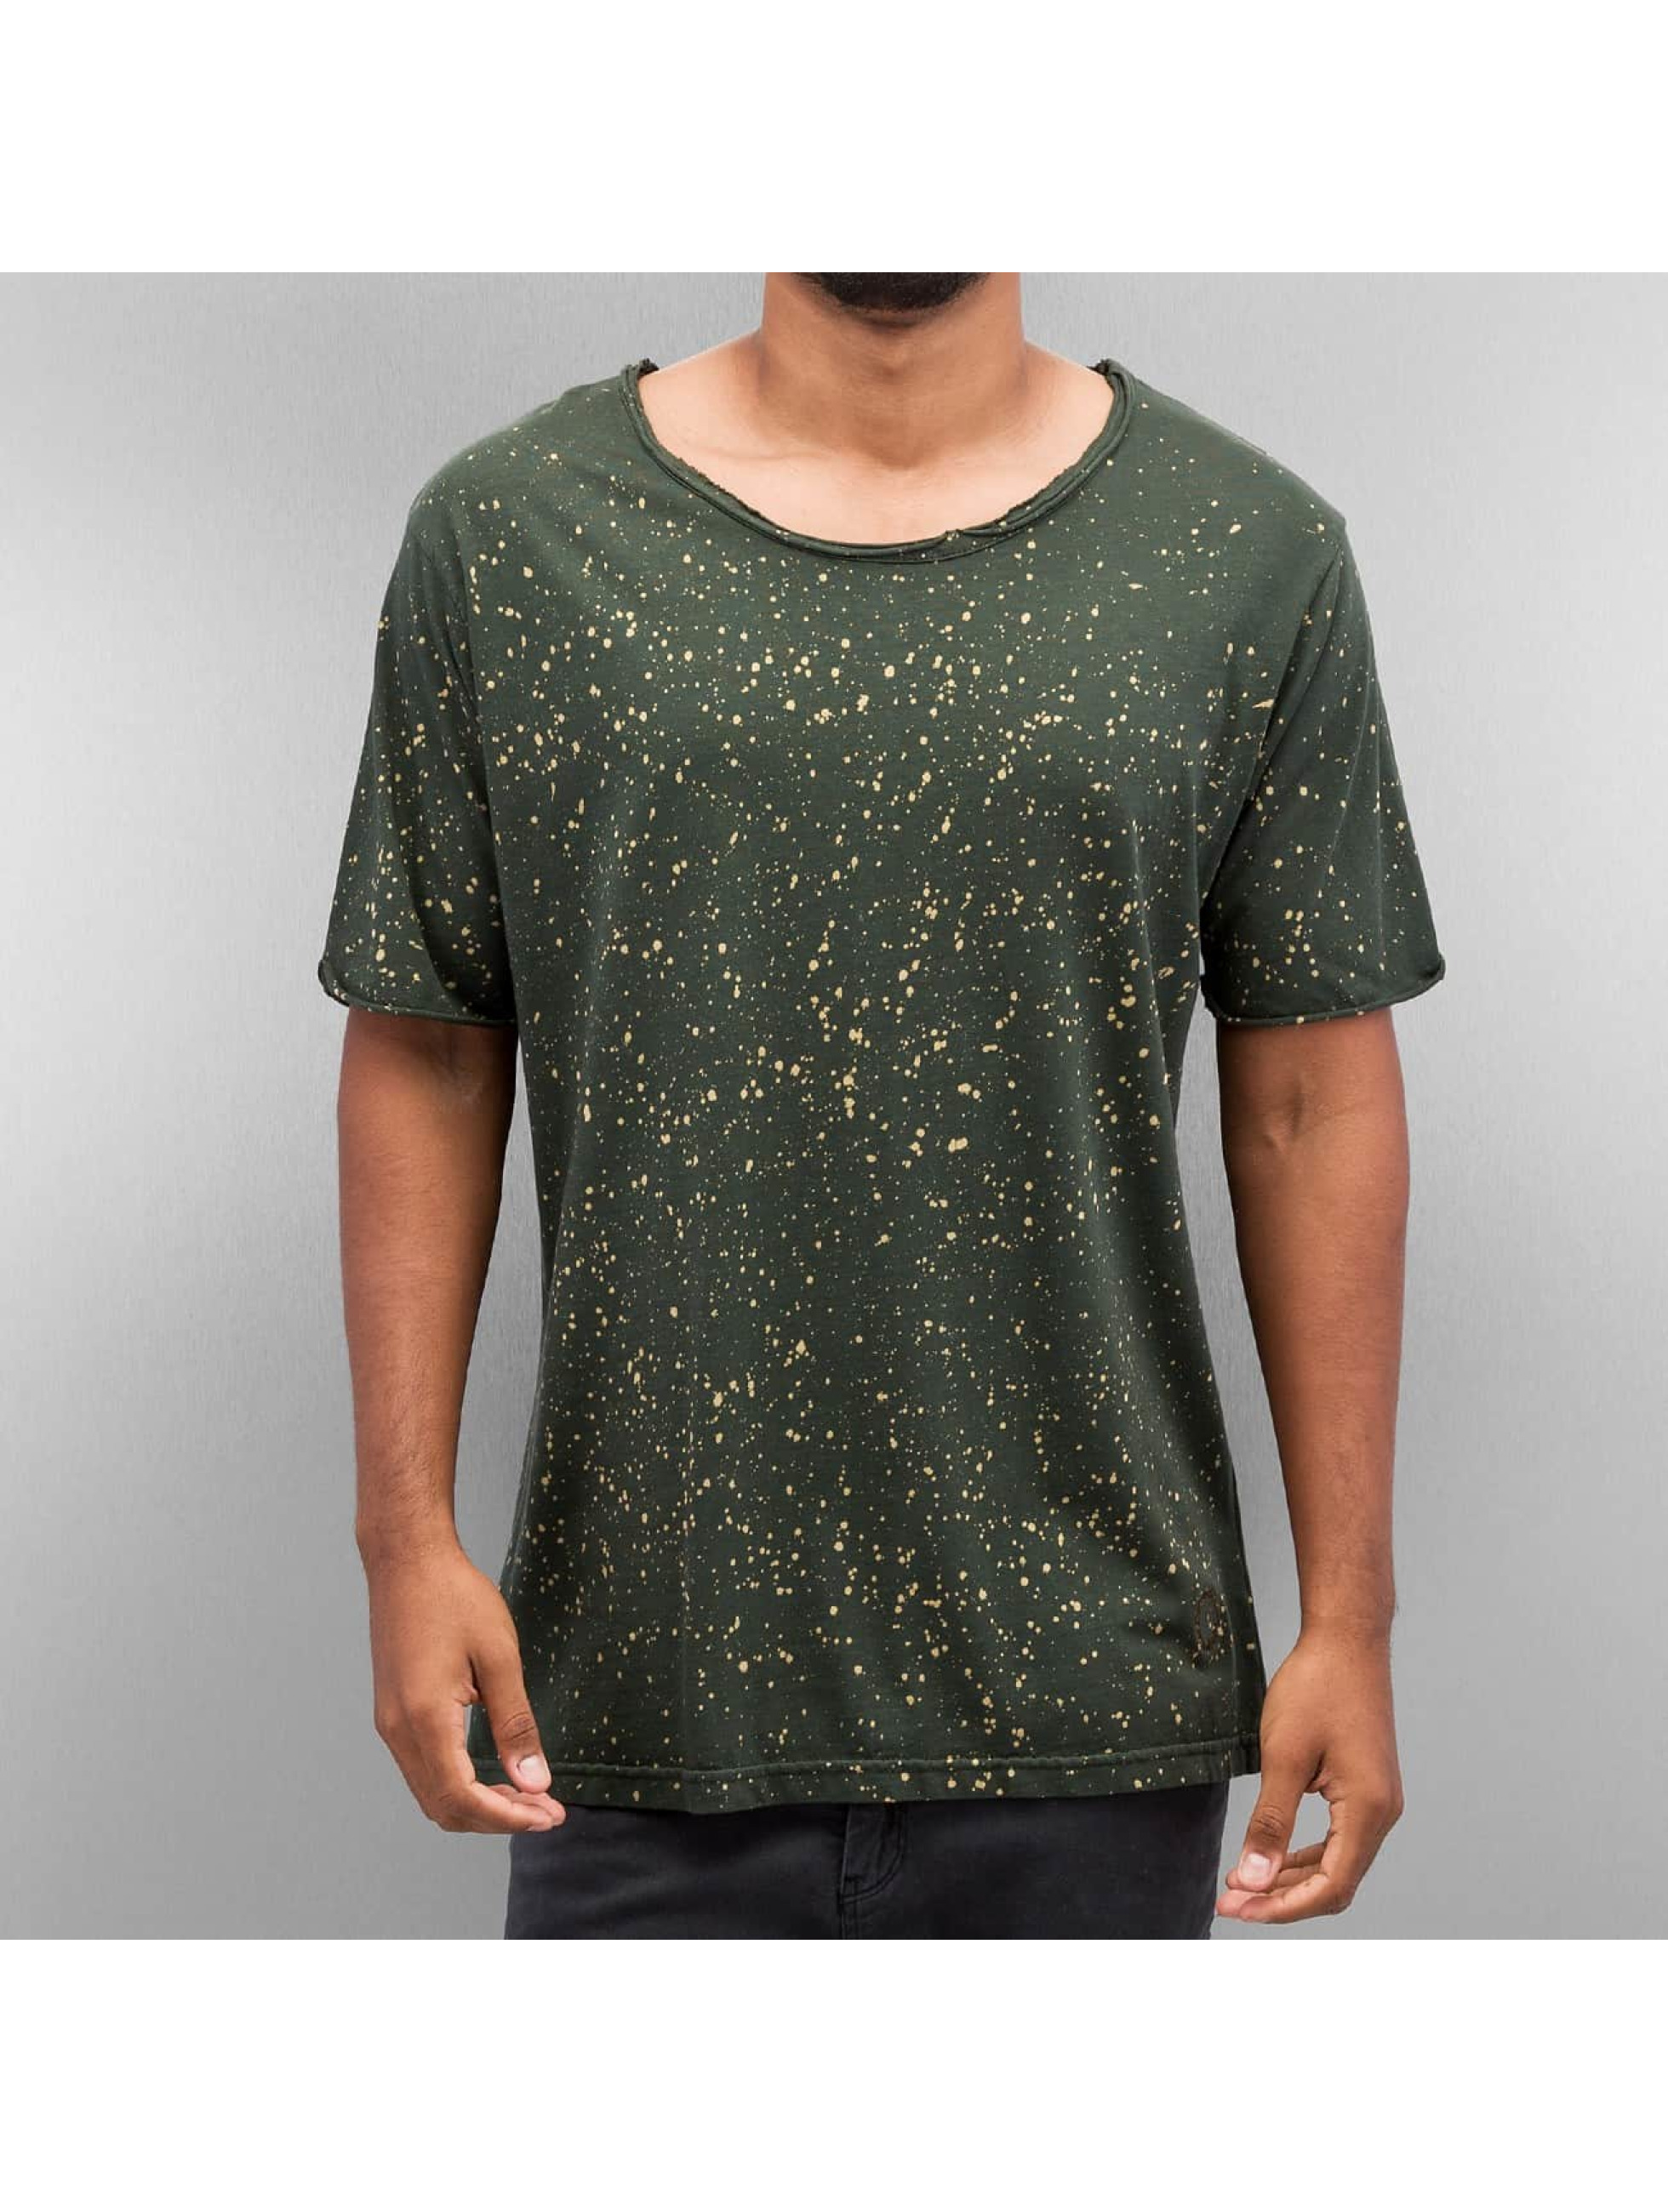 Yezz Männer T-Shirt Dots in olive